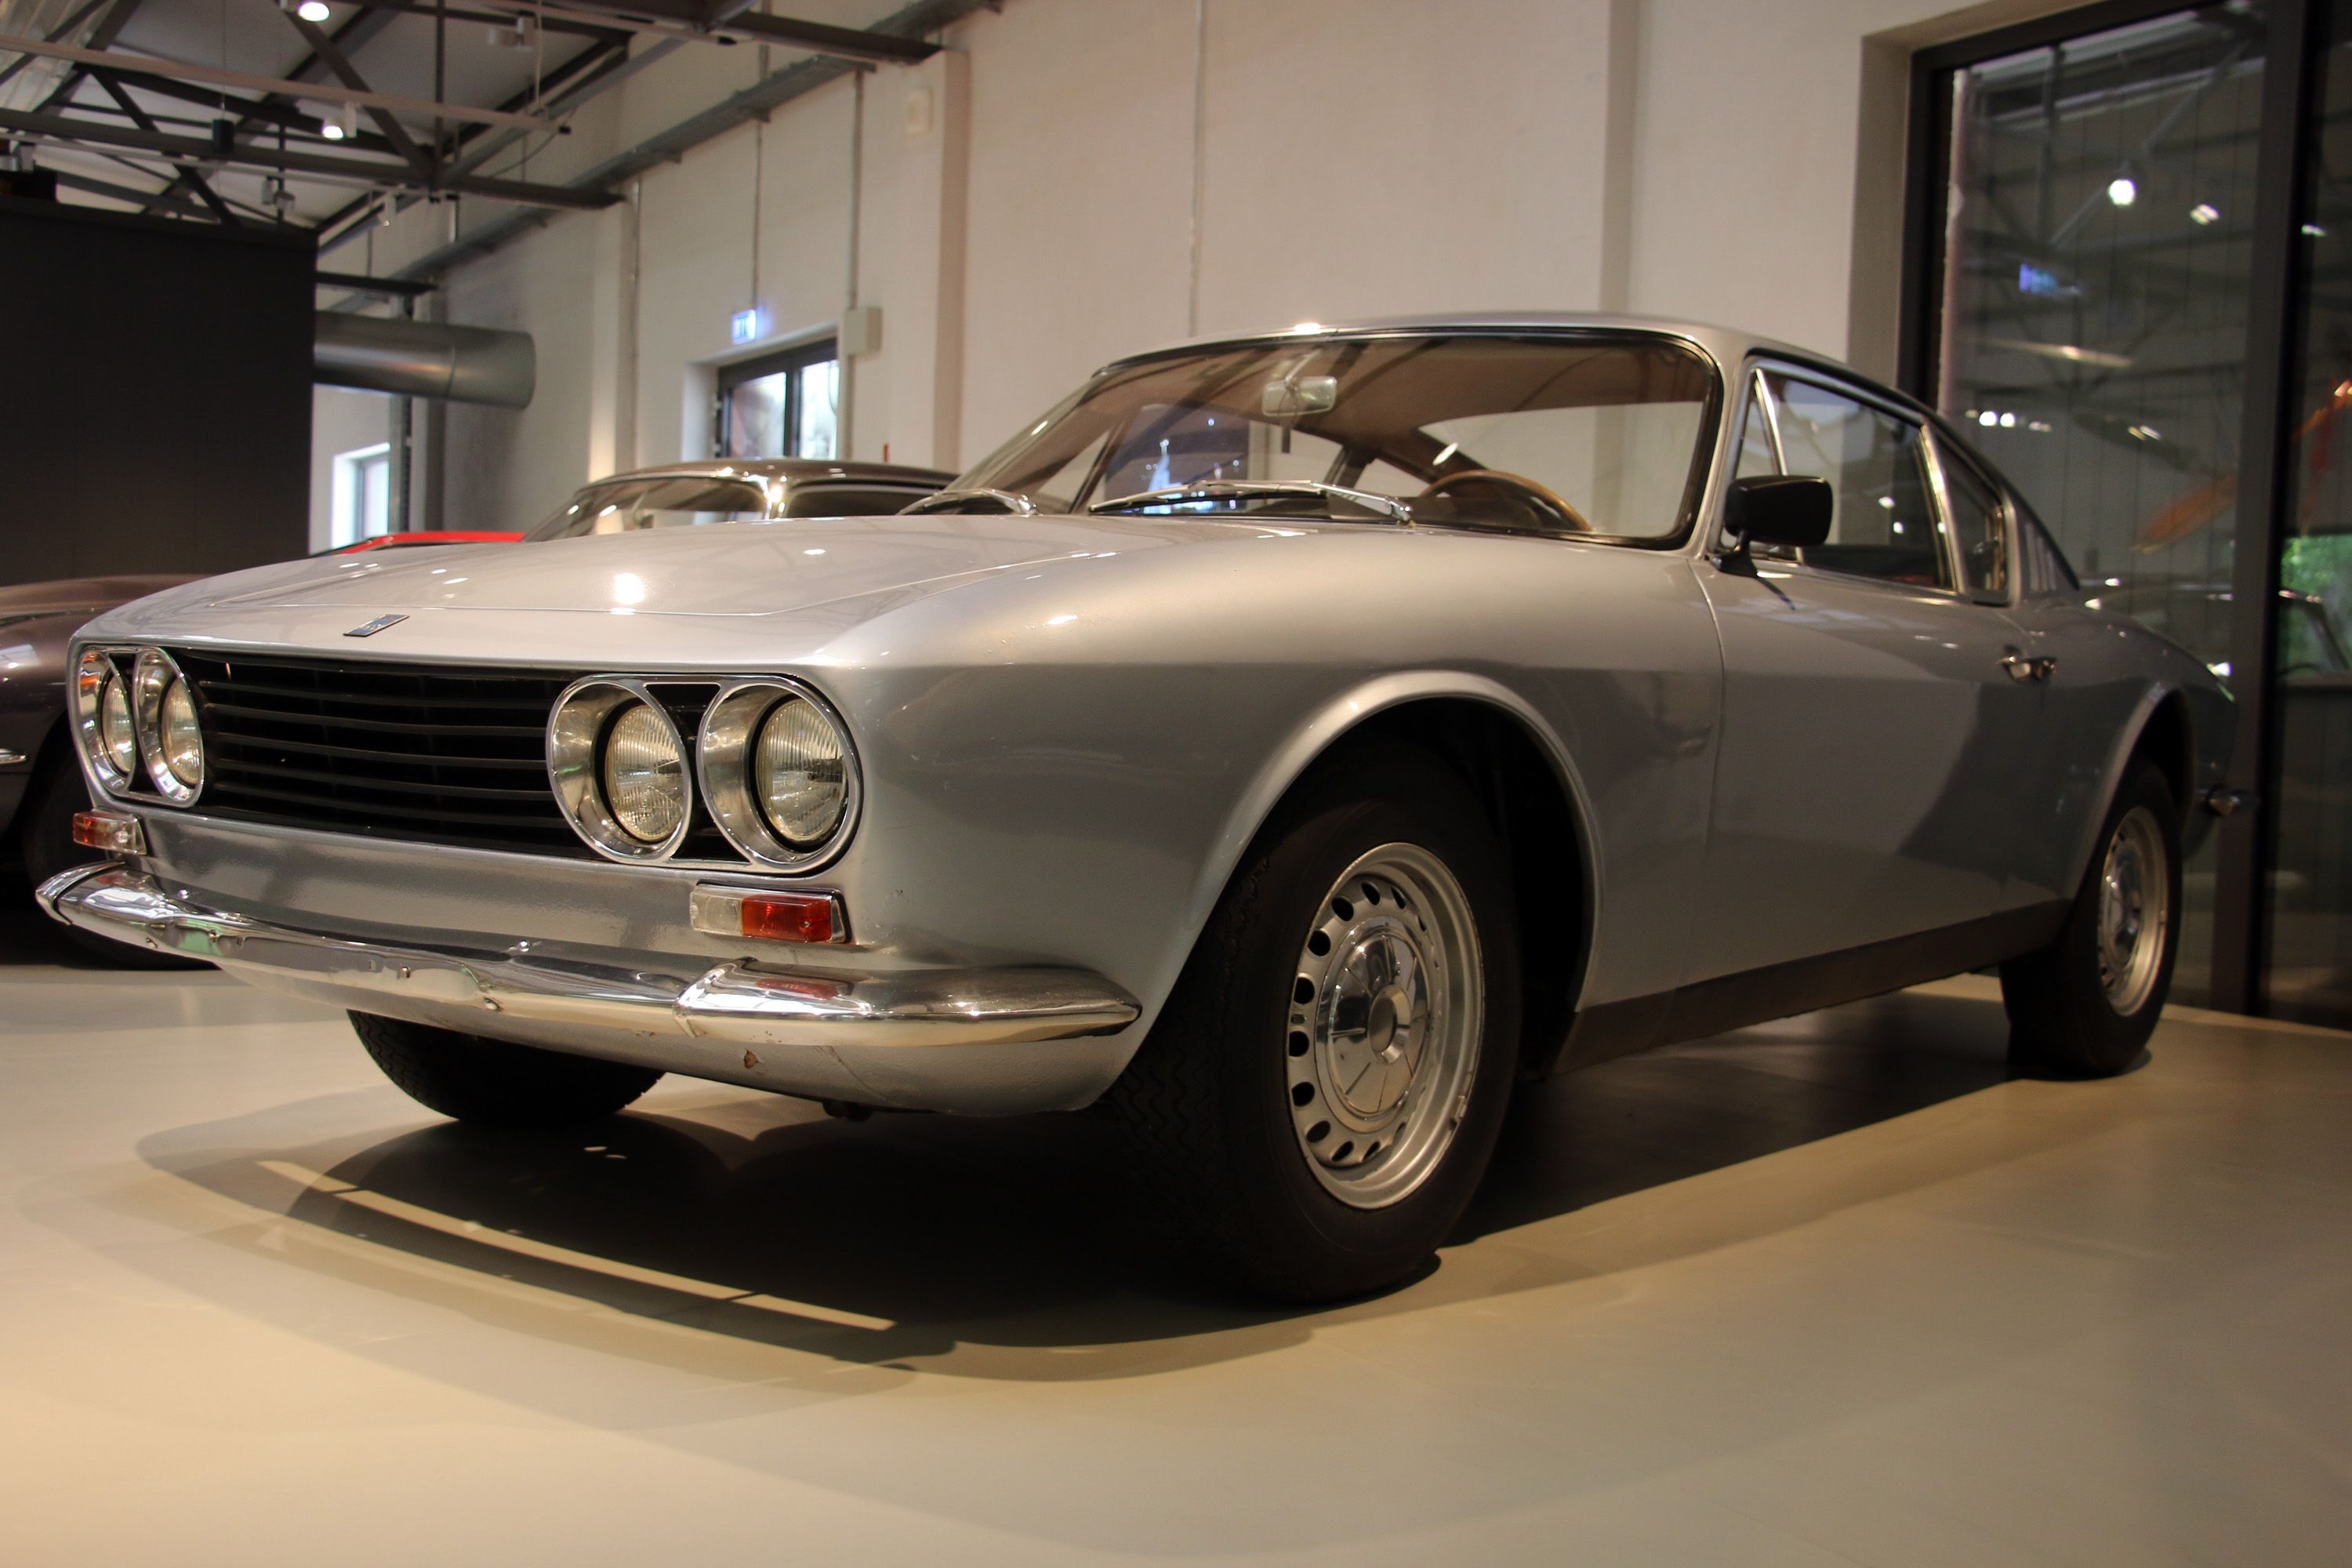 The Rarest Cars In the German Museum of Technology